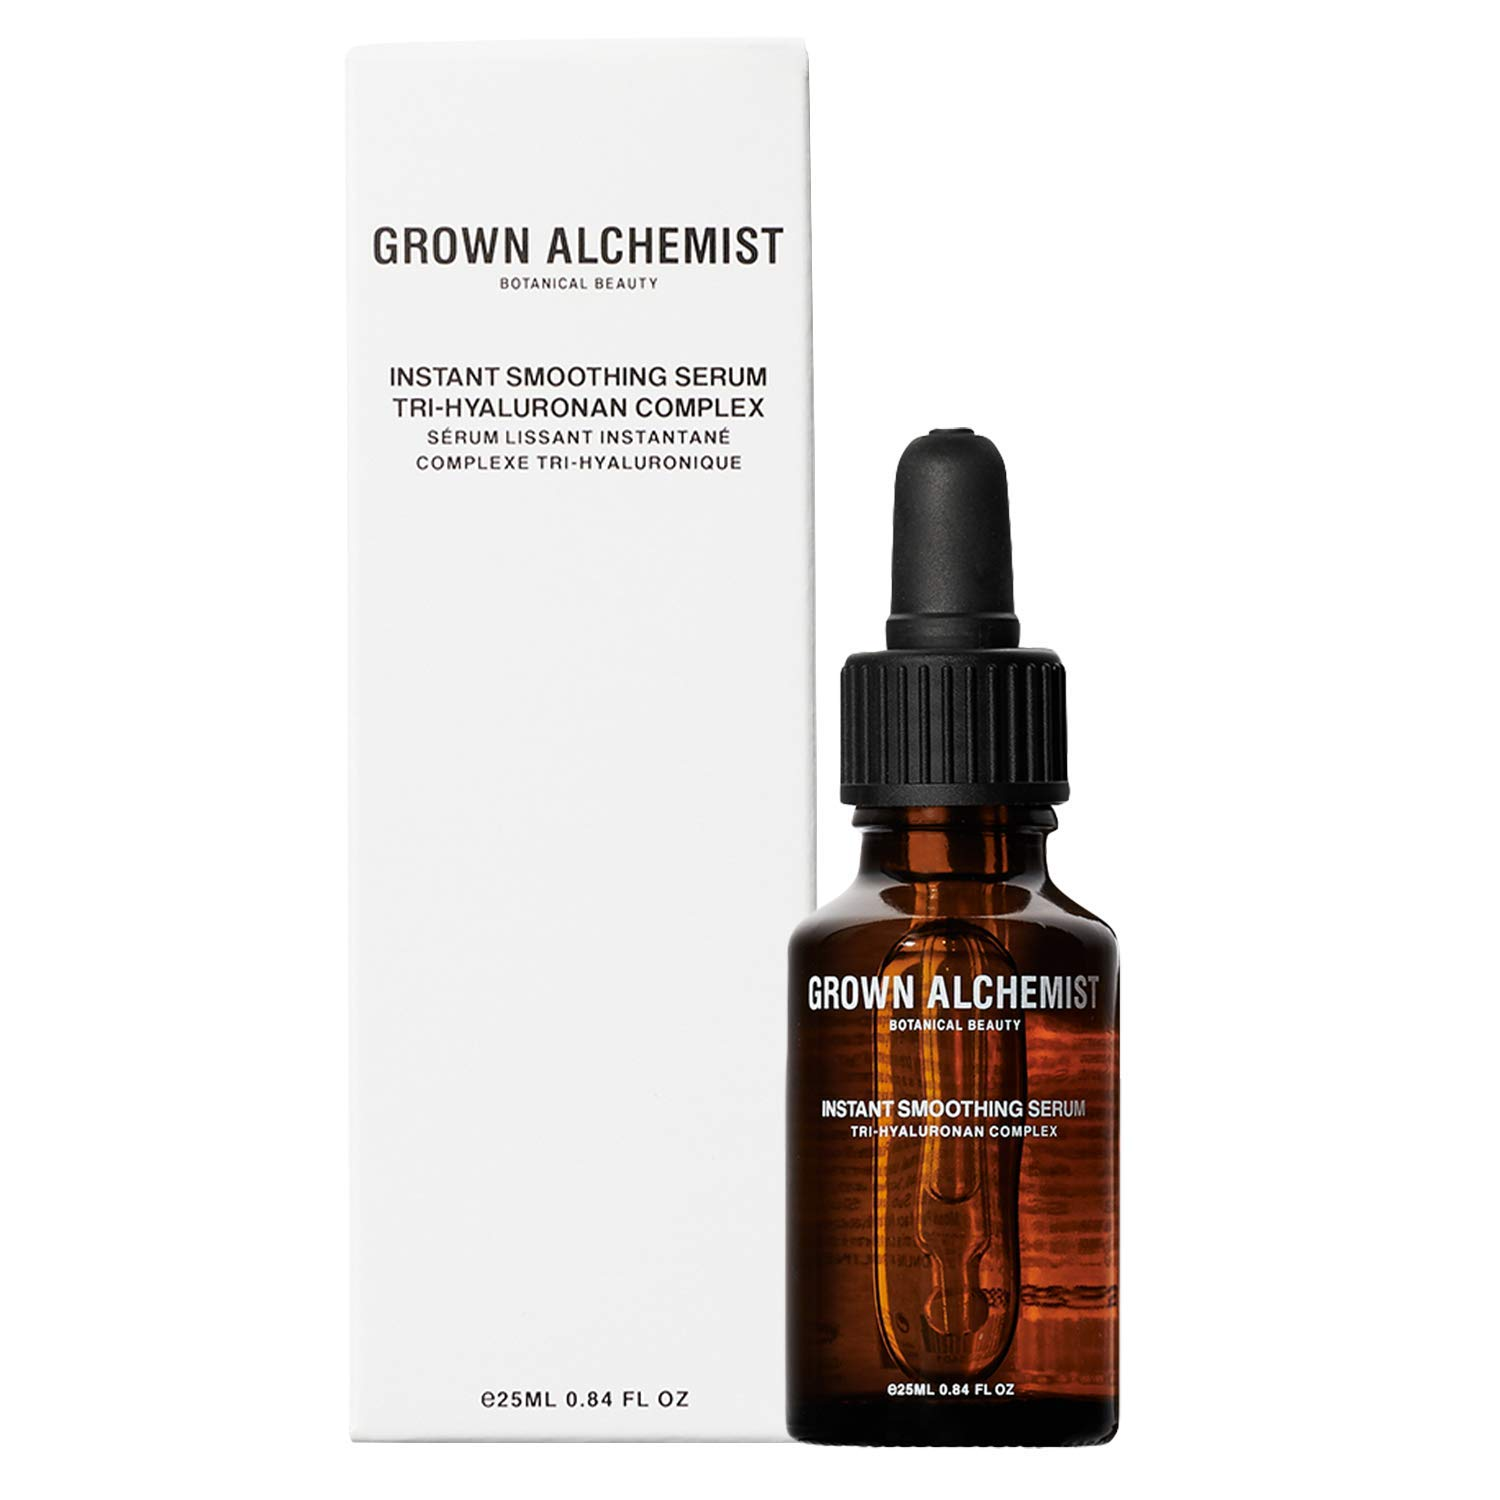 Grown Alchemist Instant Smoothing Serum - Tri-Hyaluronan Complex - Anti Aging Facial Serum Made with Organic Ingredients (25ml / 0.84oz)